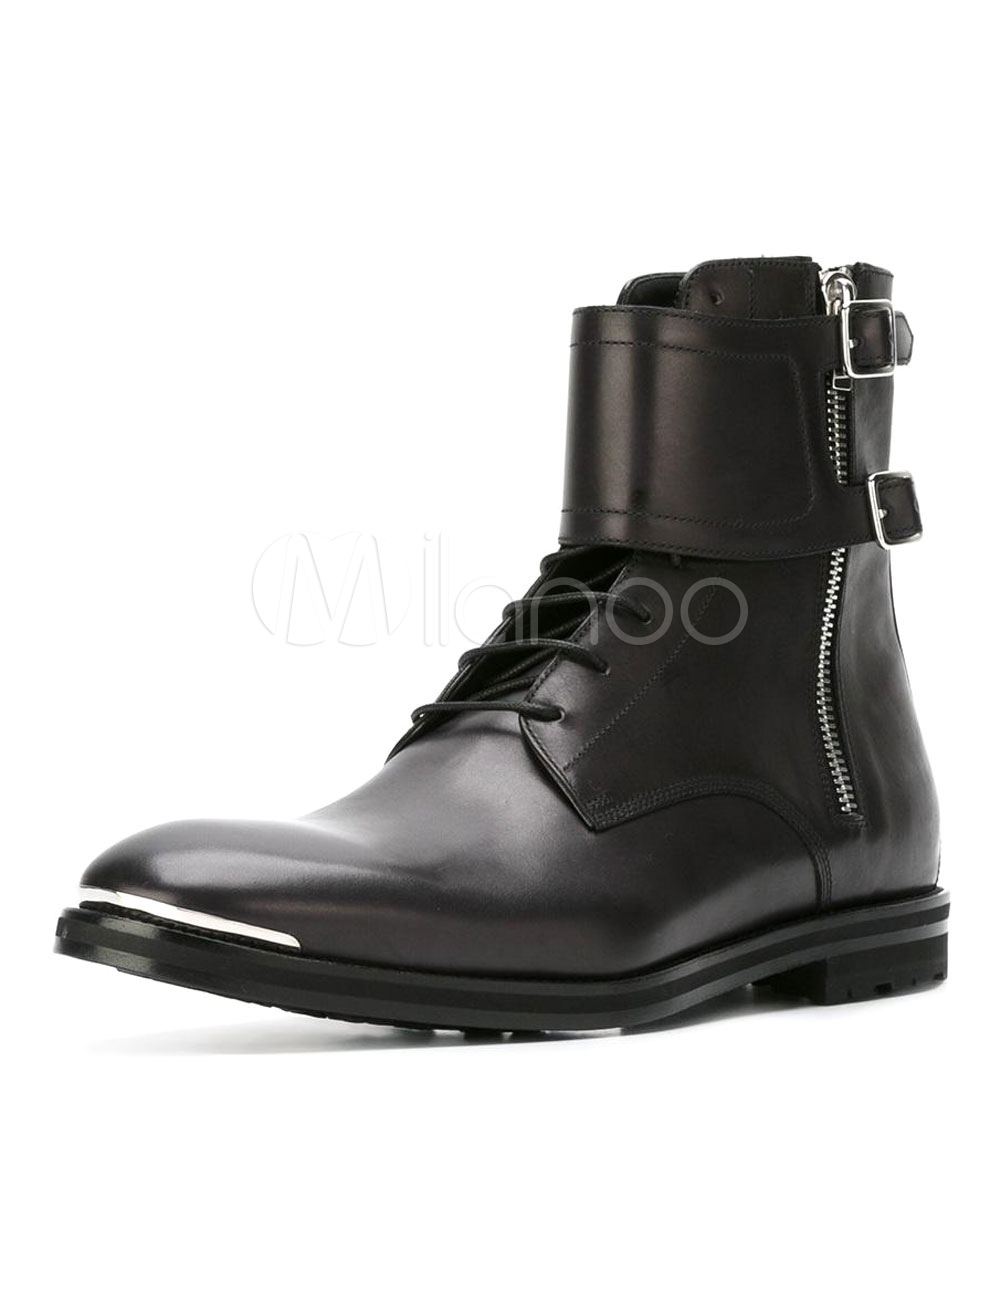 Black Martin Boots Cowhide Metallic Buckled Round Toe Zipper Men's High Top Boots thumbnail